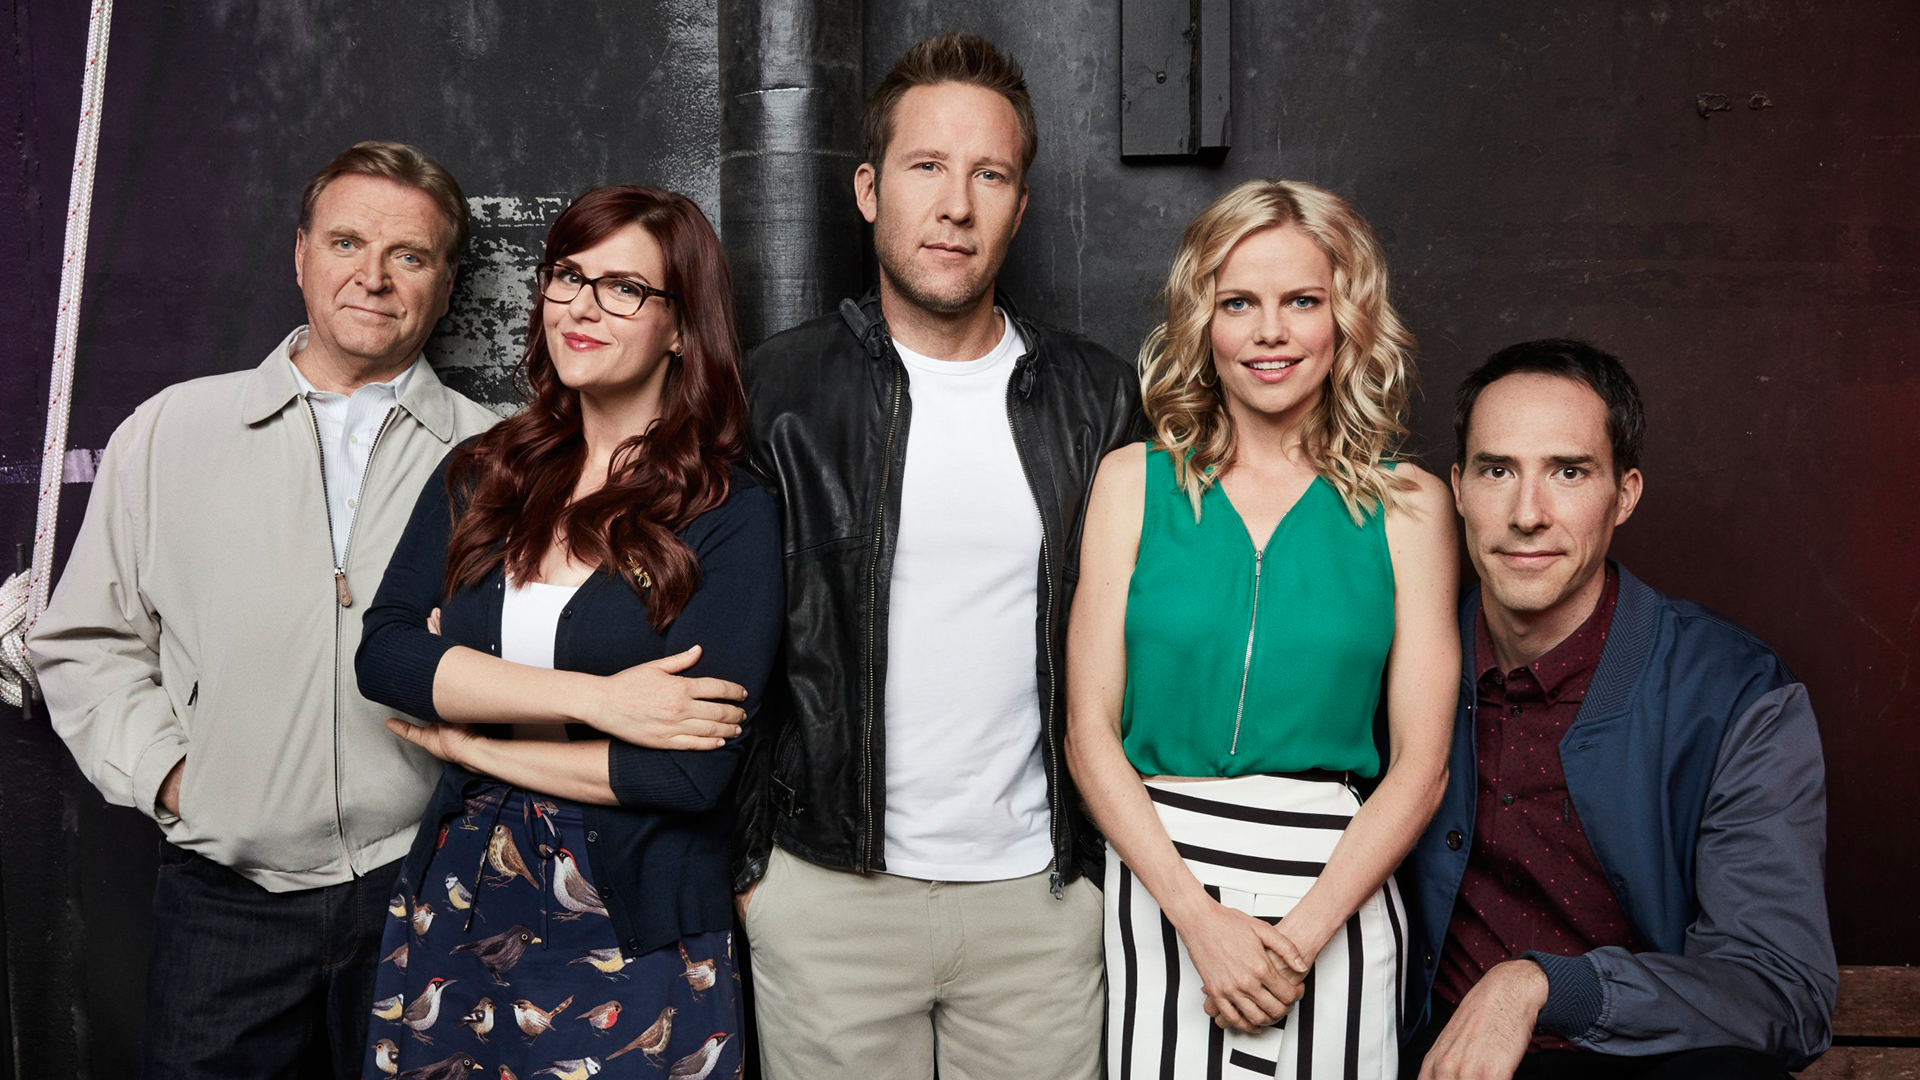 Impastor watch full episdoes tv land for Tv land tv shows